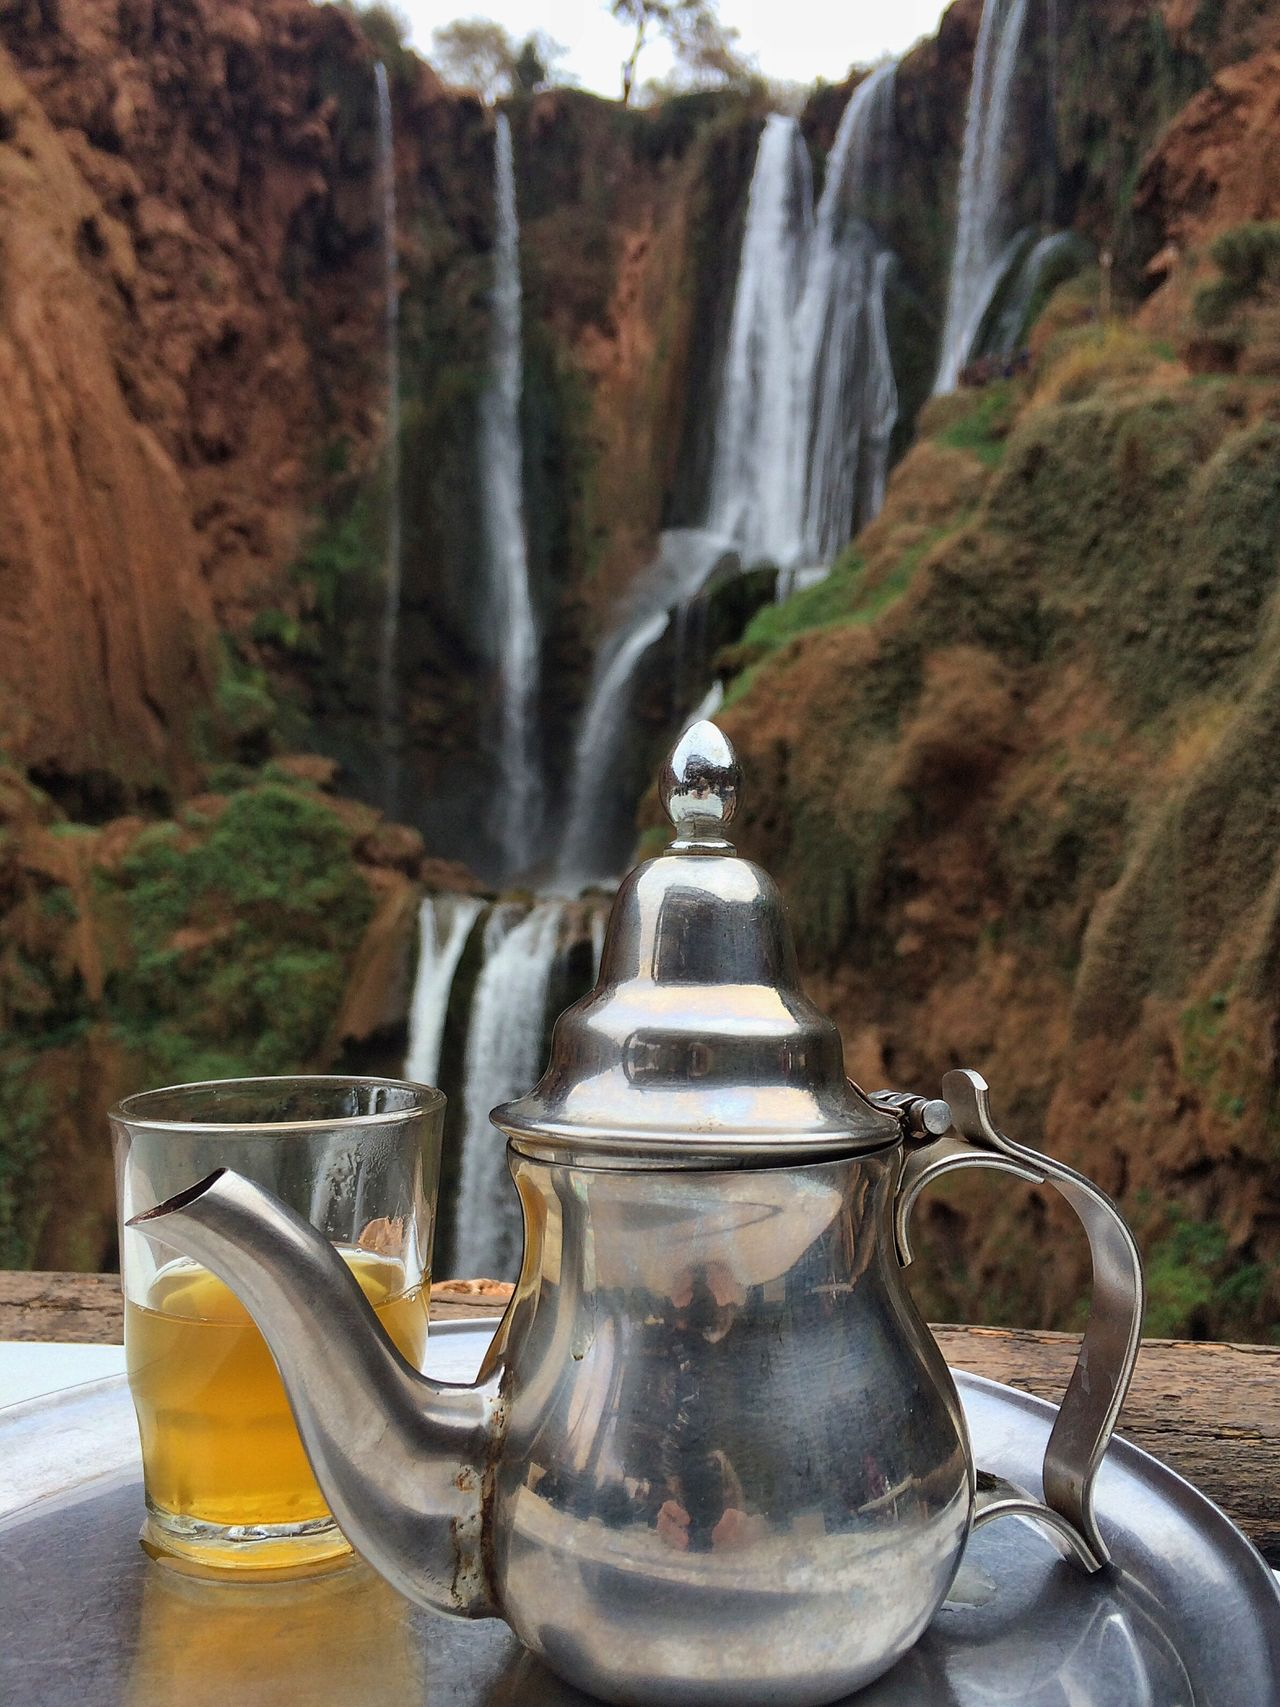 Teatime Teapot Waterfall Silver  Glass Thirsty  Scenic Marocco View